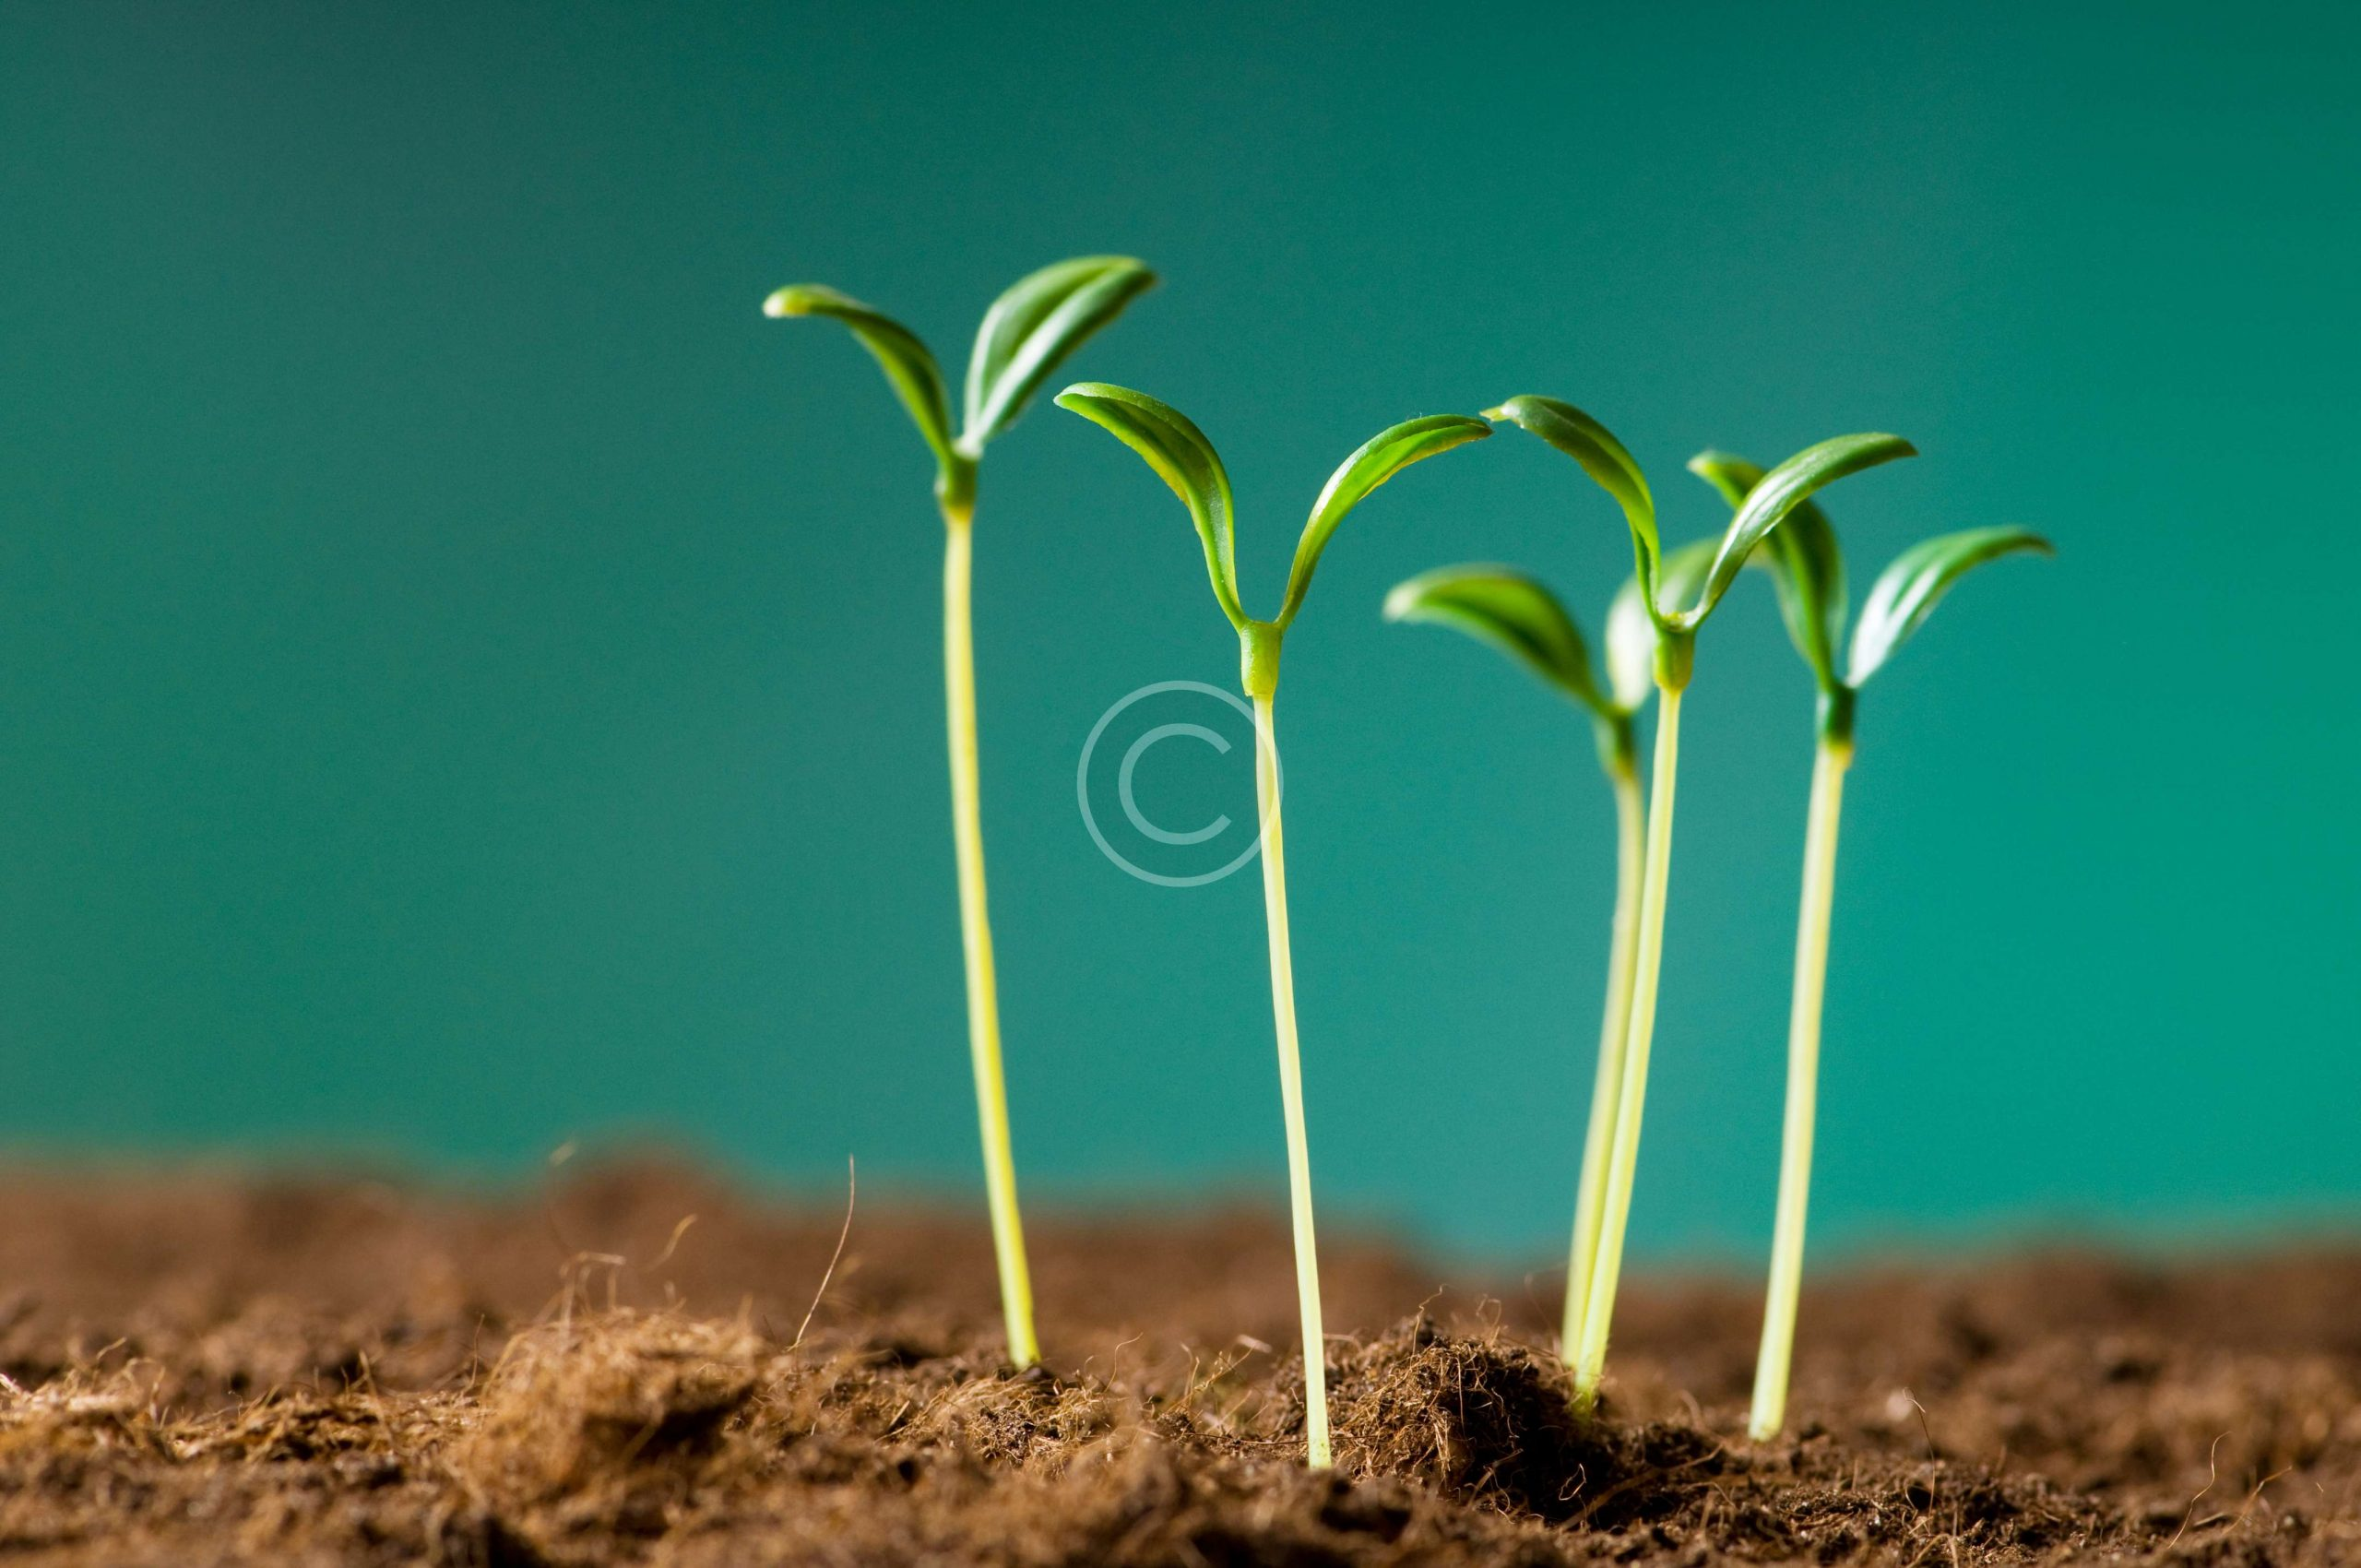 bigstock-Green-seedling-illustrating-co-14319230-scaled